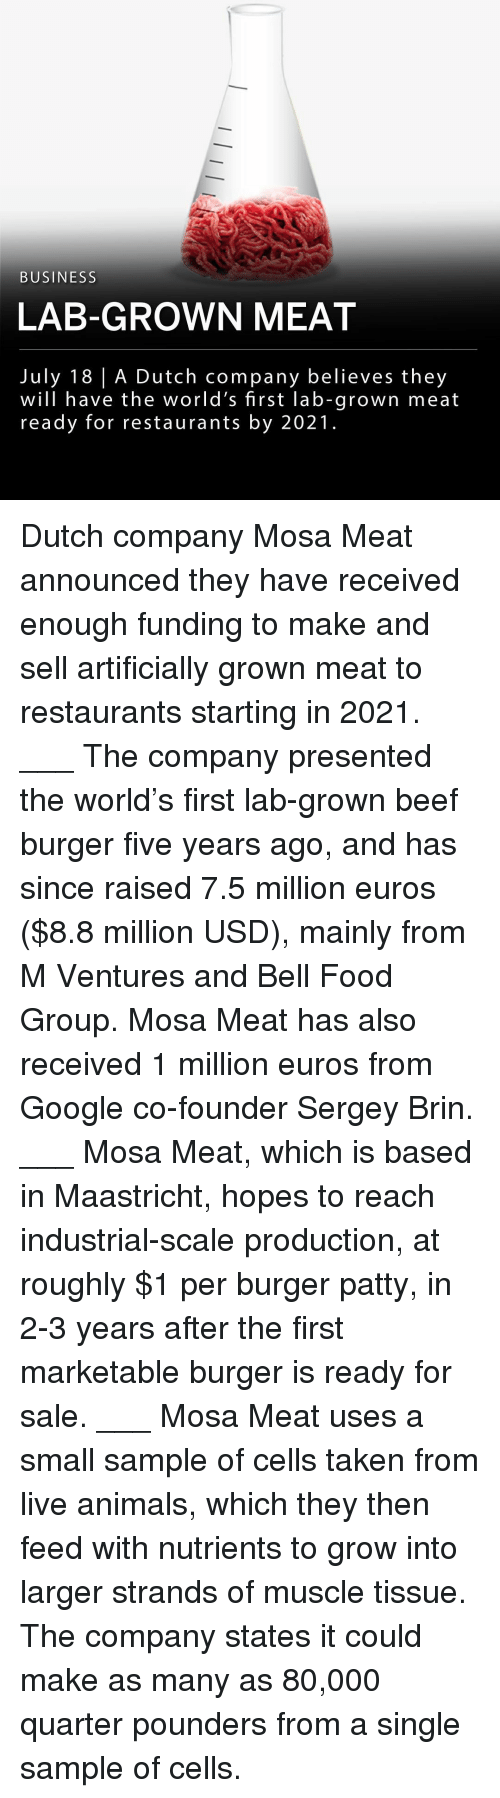 Marketable: BUSINESS  LAB-GROWN MEAT  July 18   A Dutch company believes they  will have the world's first lab-grown meat  ready for restaurants by 2021 Dutch company Mosa Meat announced they have received enough funding to make and sell artificially grown meat to restaurants starting in 2021. ___ The company presented the world's first lab-grown beef burger five years ago, and has since raised 7.5 million euros ($8.8 million USD), mainly from M Ventures and Bell Food Group. Mosa Meat has also received 1 million euros from Google co-founder Sergey Brin. ___ Mosa Meat, which is based in Maastricht, hopes to reach industrial-scale production, at roughly $1 per burger patty, in 2-3 years after the first marketable burger is ready for sale. ___ Mosa Meat uses a small sample of cells taken from live animals, which they then feed with nutrients to grow into larger strands of muscle tissue. The company states it could make as many as 80,000 quarter pounders from a single sample of cells.